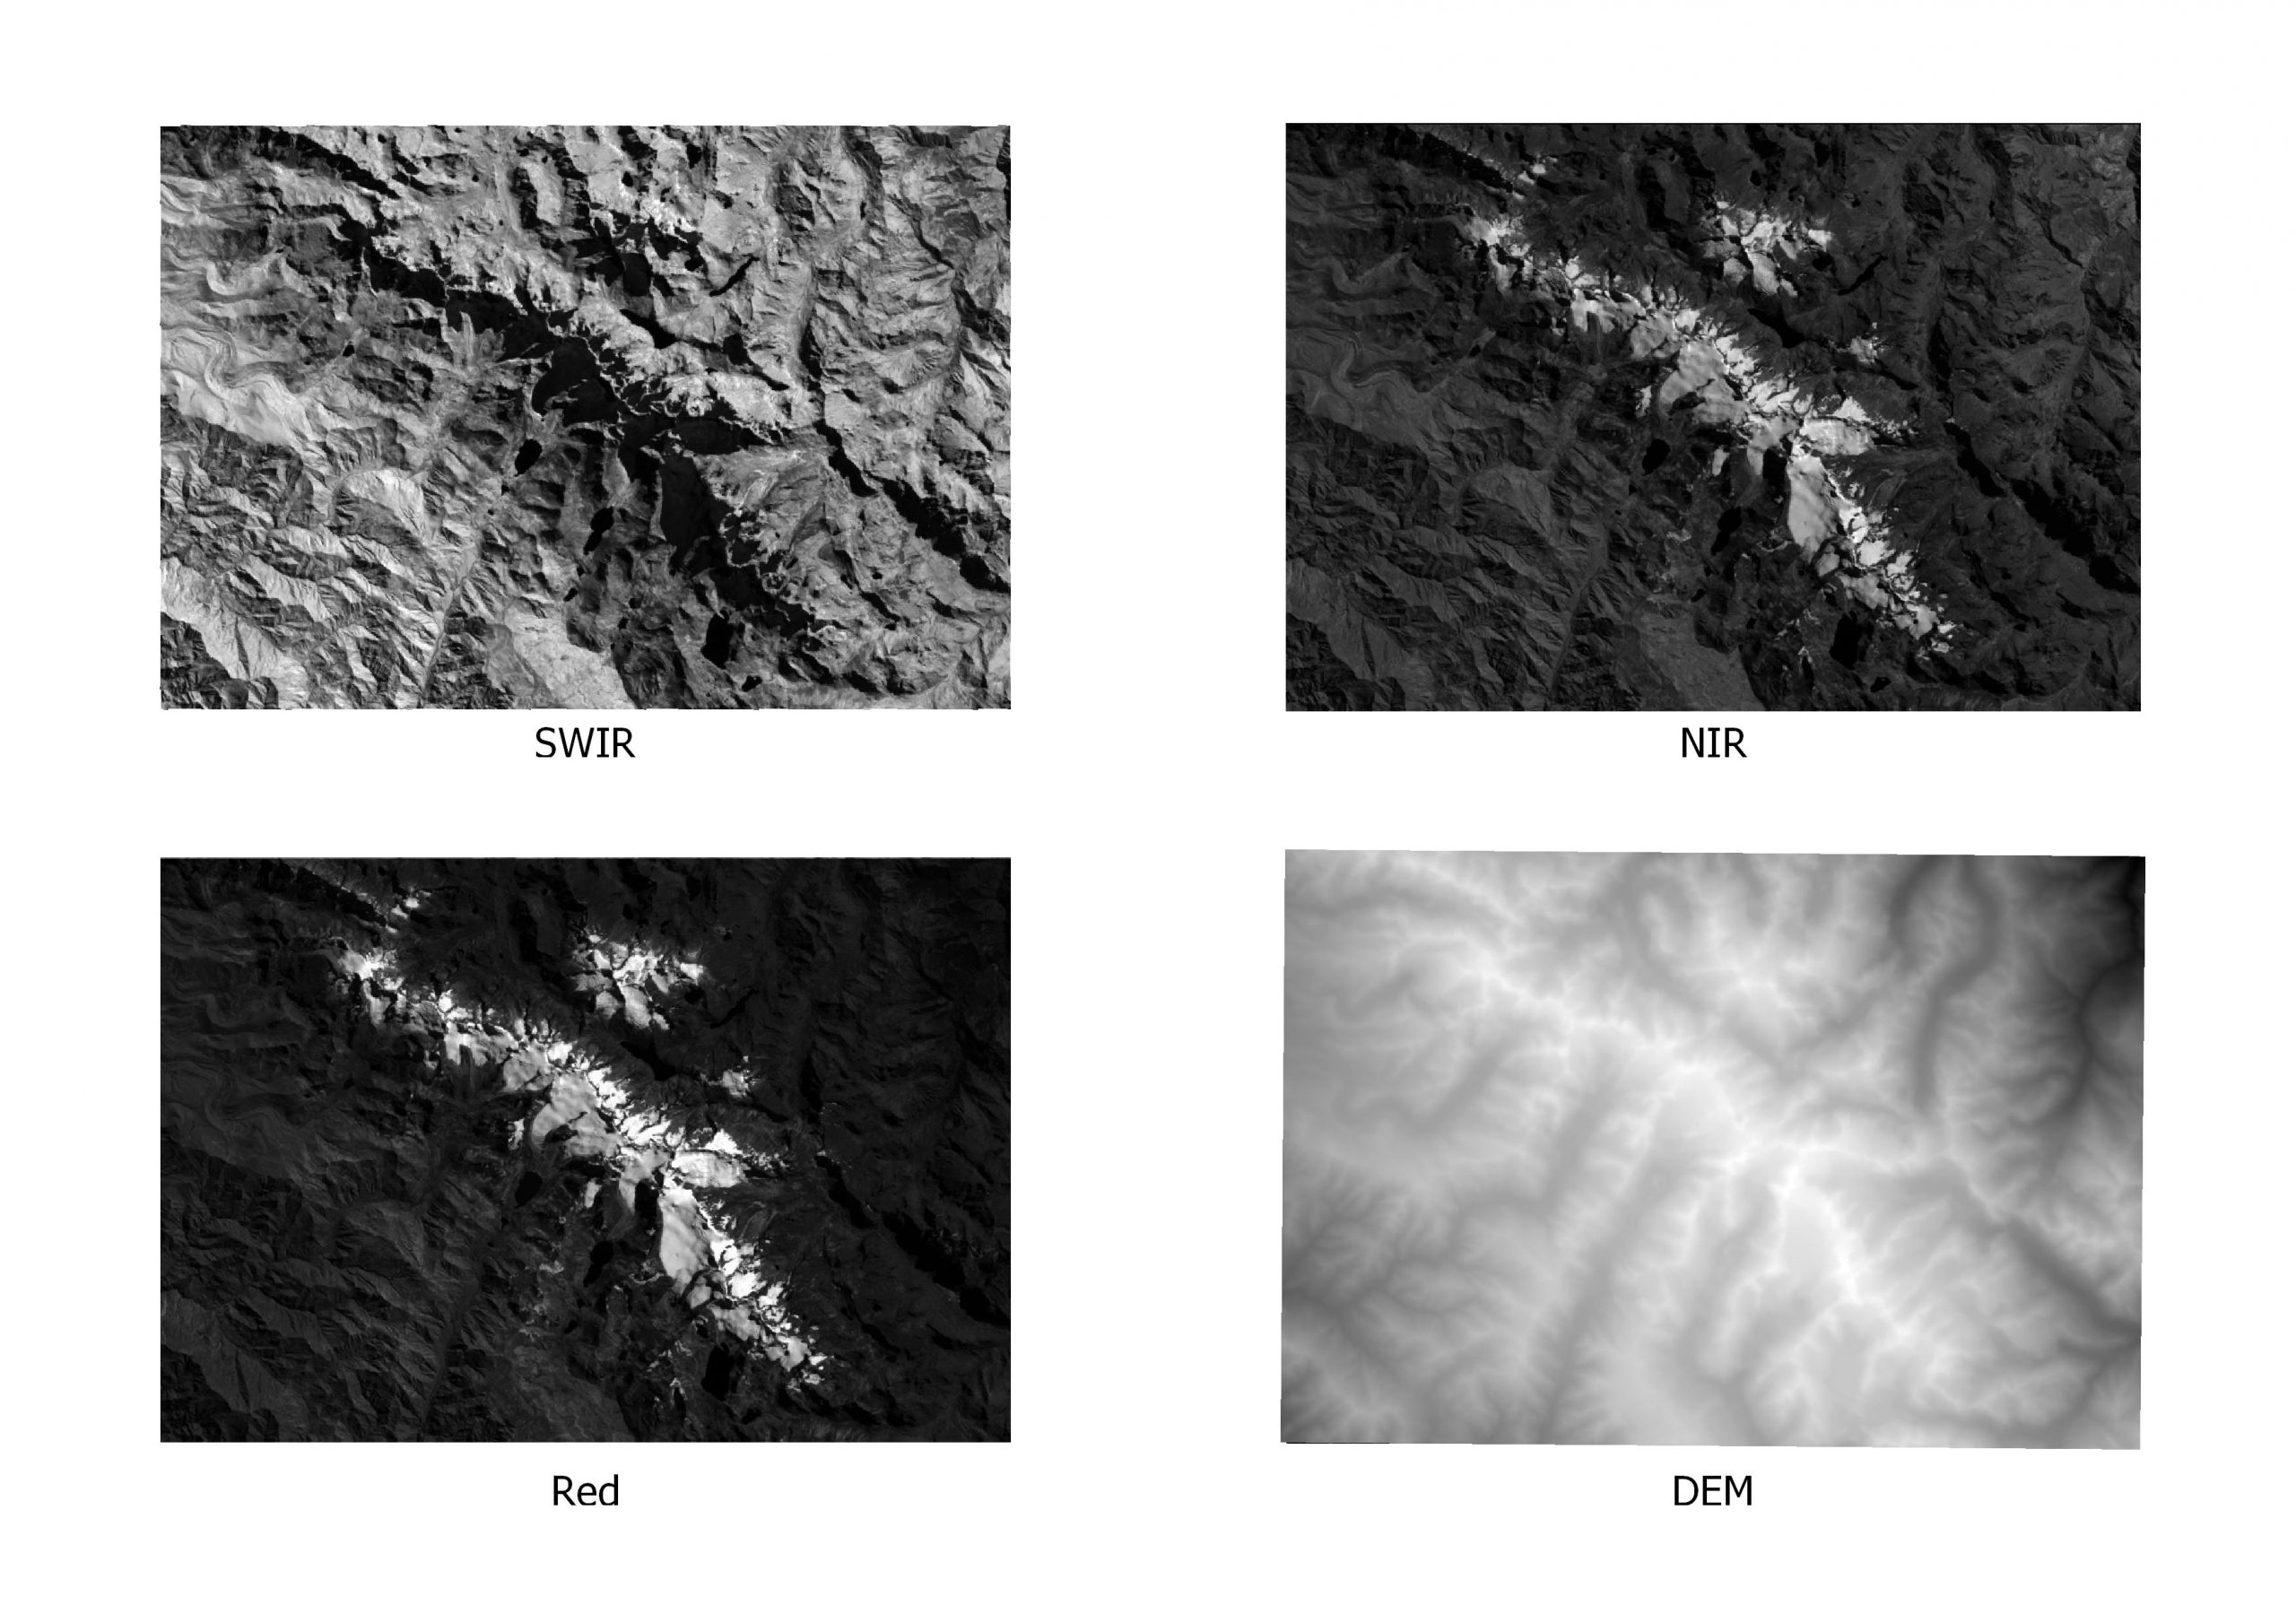 Figure 4: The images of ROI of the bands SWIR, NIR (top left, top right), Red, and DEM (bottom left, bottom right) after clipping.